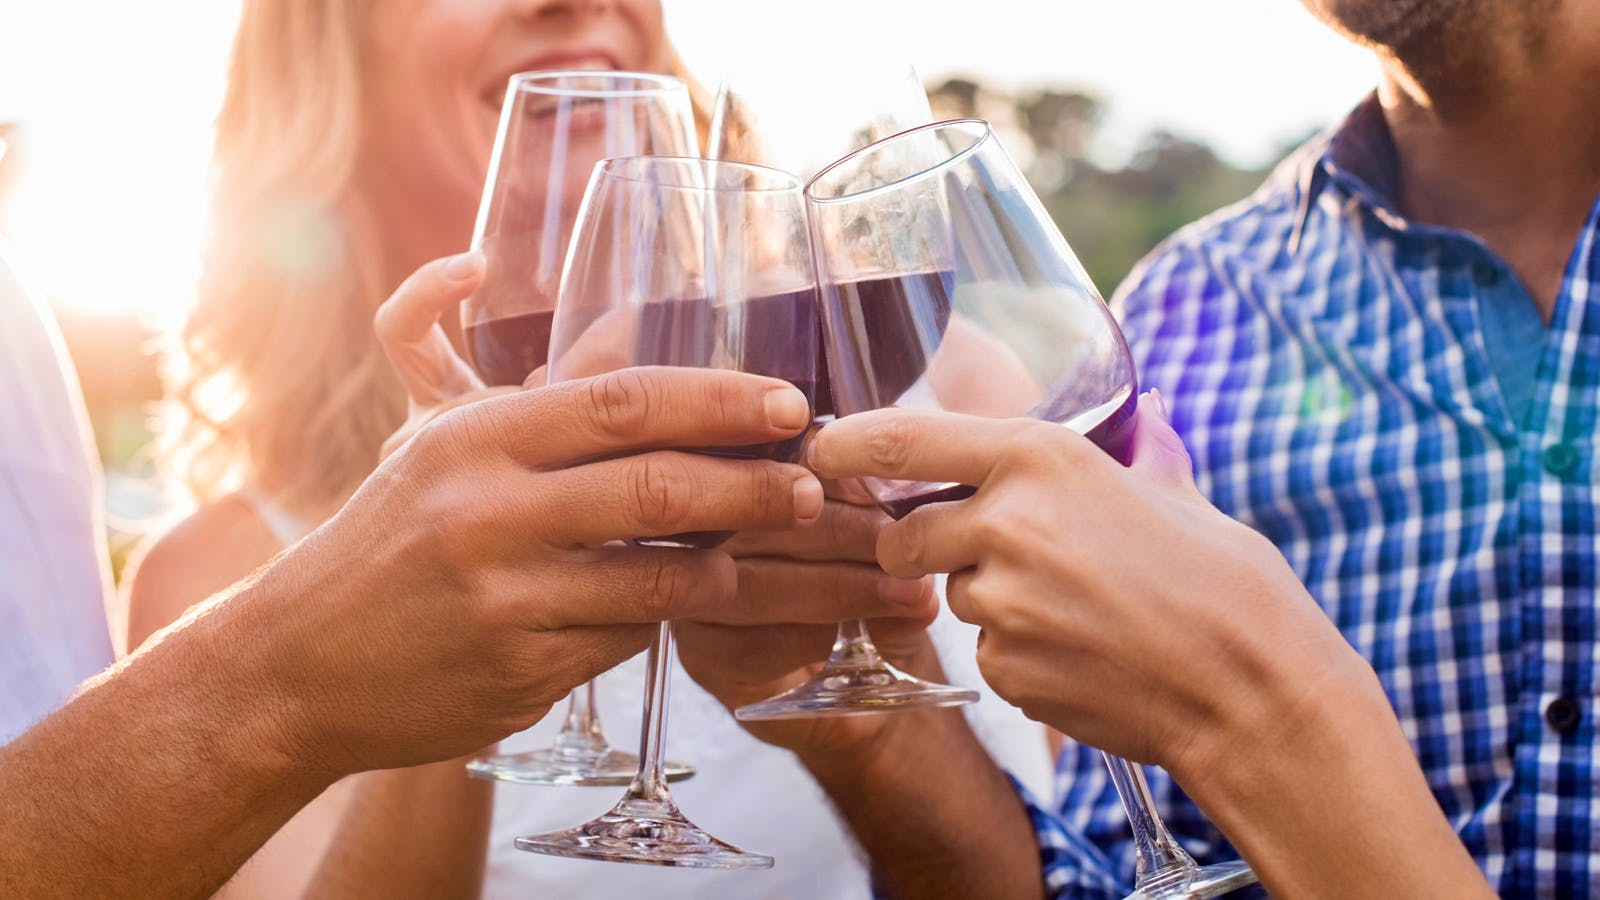 Debate Over Alcohol's Health Effects Grows